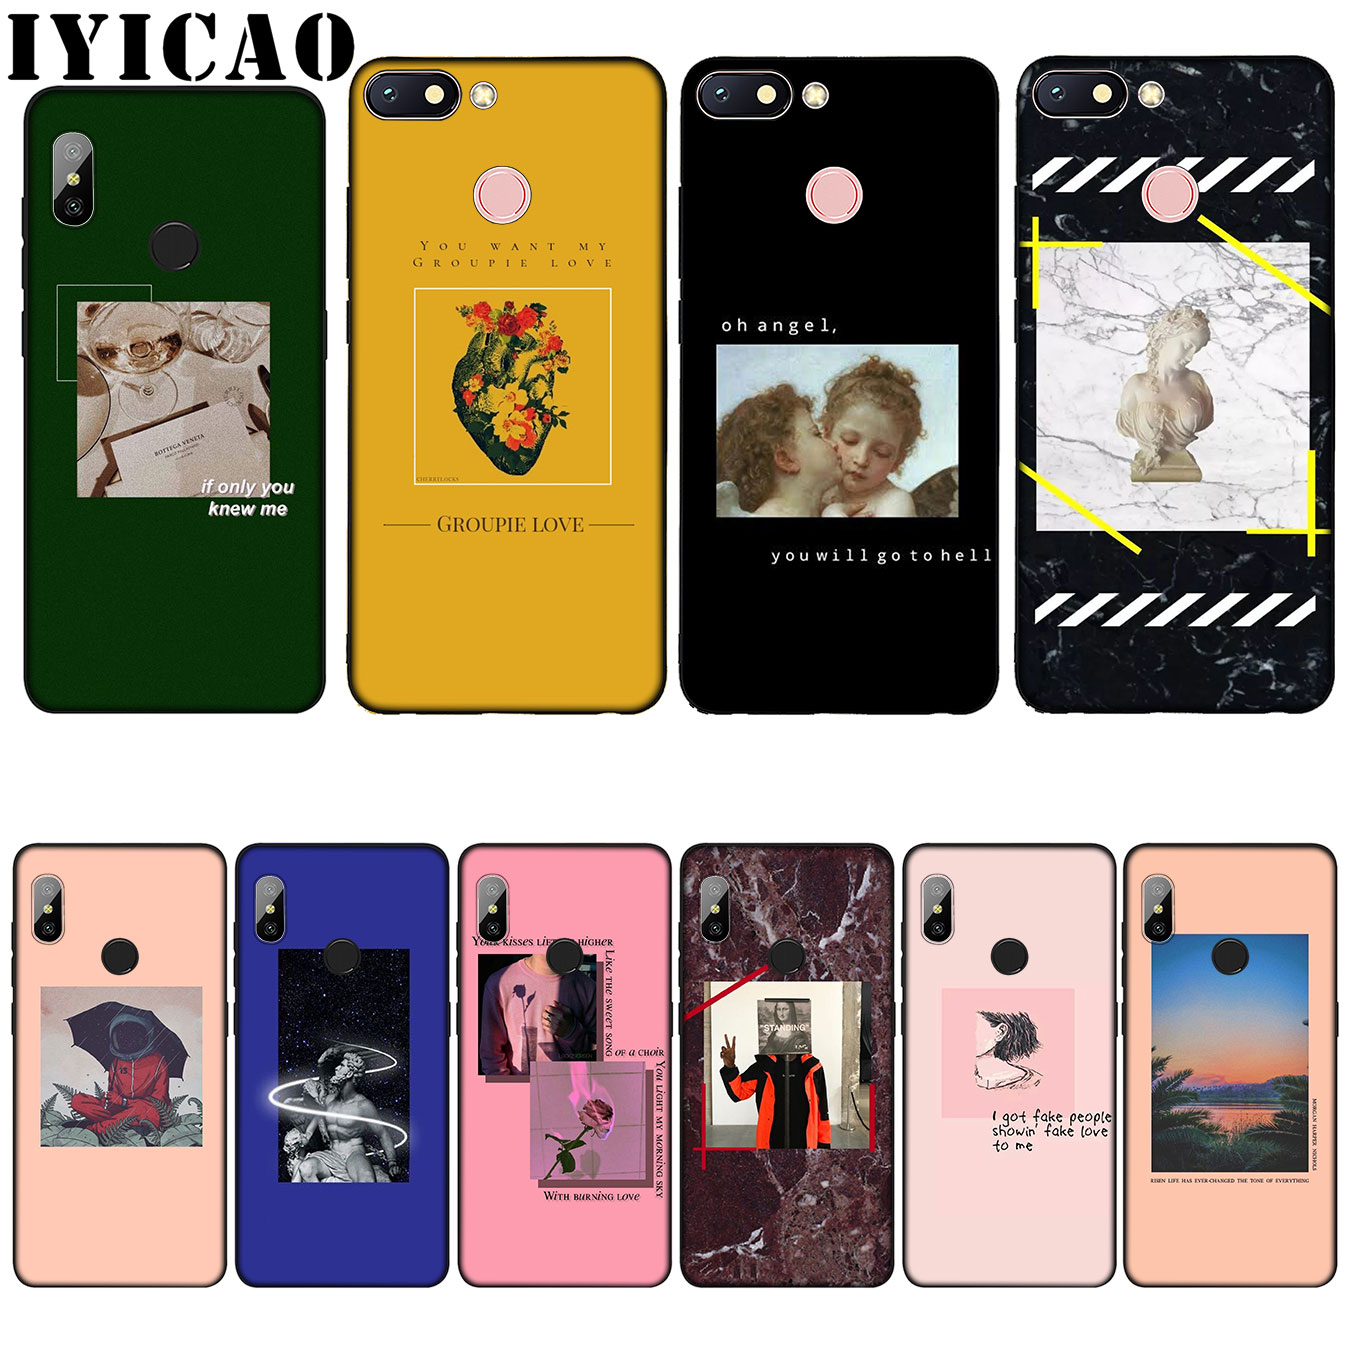 IYICAO Great art aesthetic van Gogh Mona Lisa David-love Silicone Soft Case for Xiaomi Redmi 6A 5A Note 7 4 4X 5 Plus 6 Pro